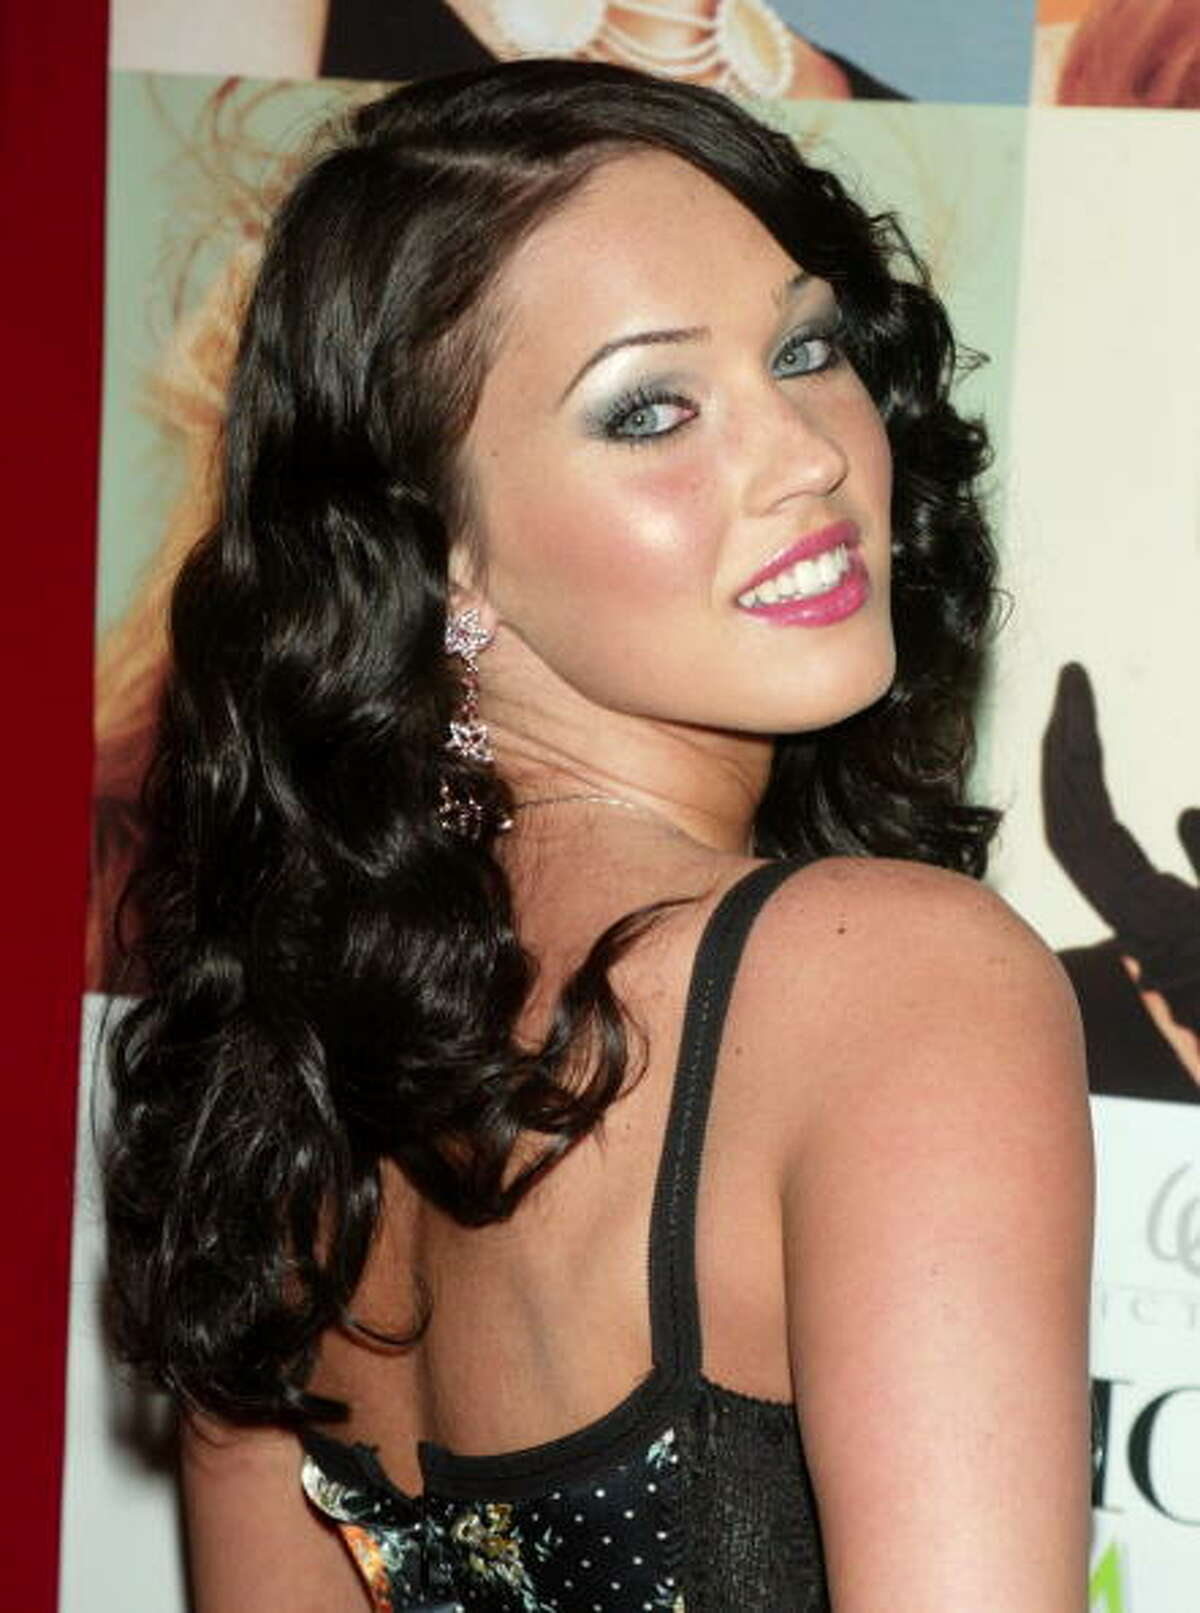 Megan Fox was born in Tennessee on May 16, 1986.